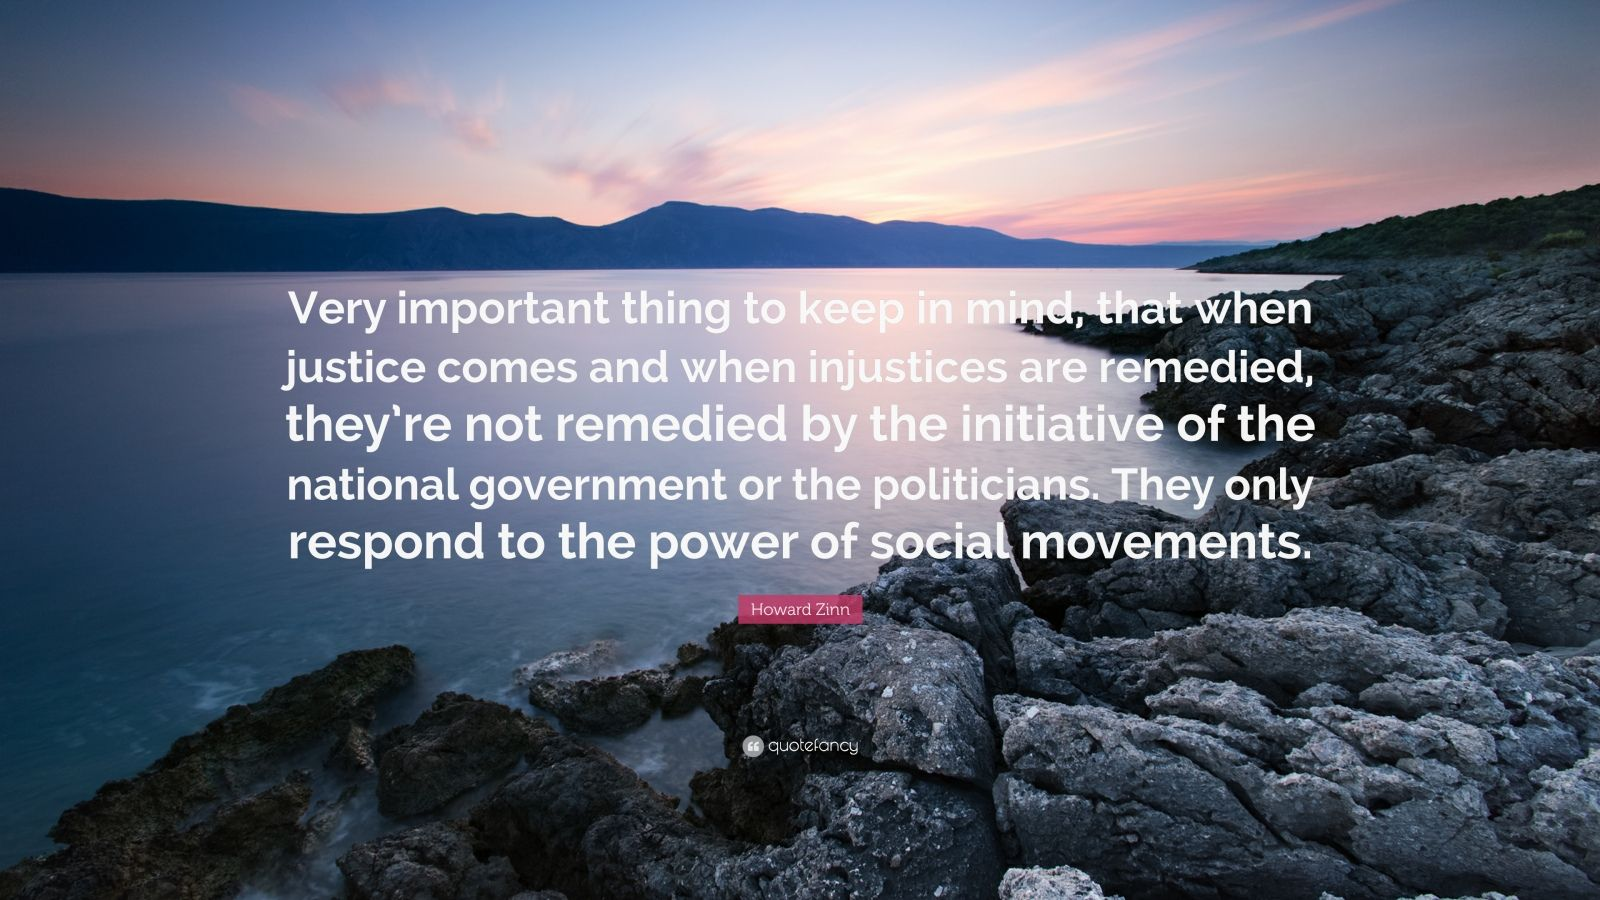 """Howard Zinn Quote: """"Very important thing to keep in mind, that when justice comes and when injustices are remedied, they're not remedied by the initiative of the national government or the politicians. They only respond to the power of social movements."""""""